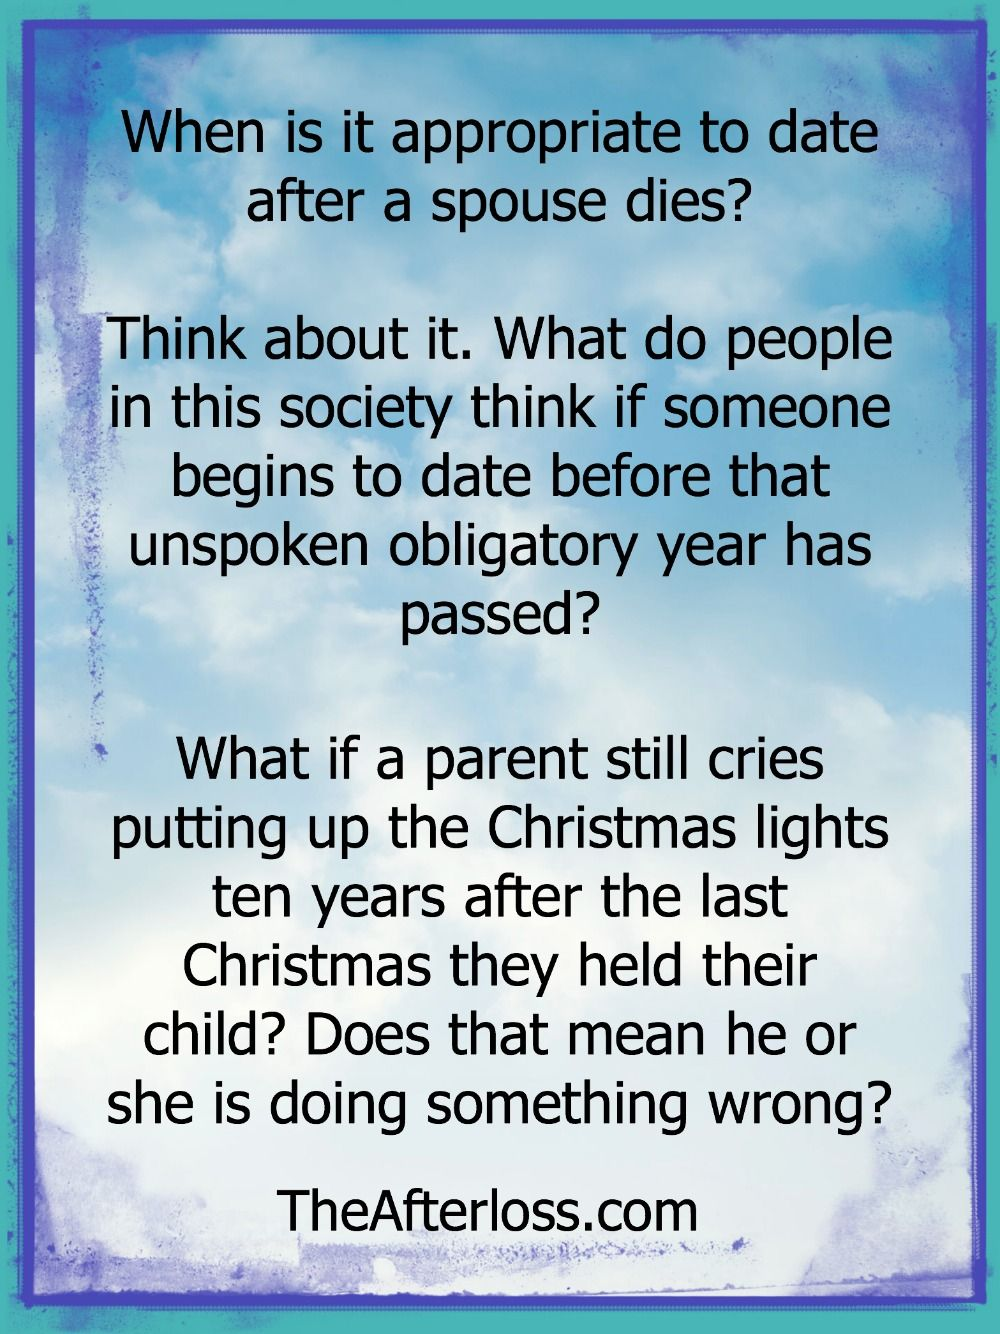 How long should you wait before dating after death of spouse